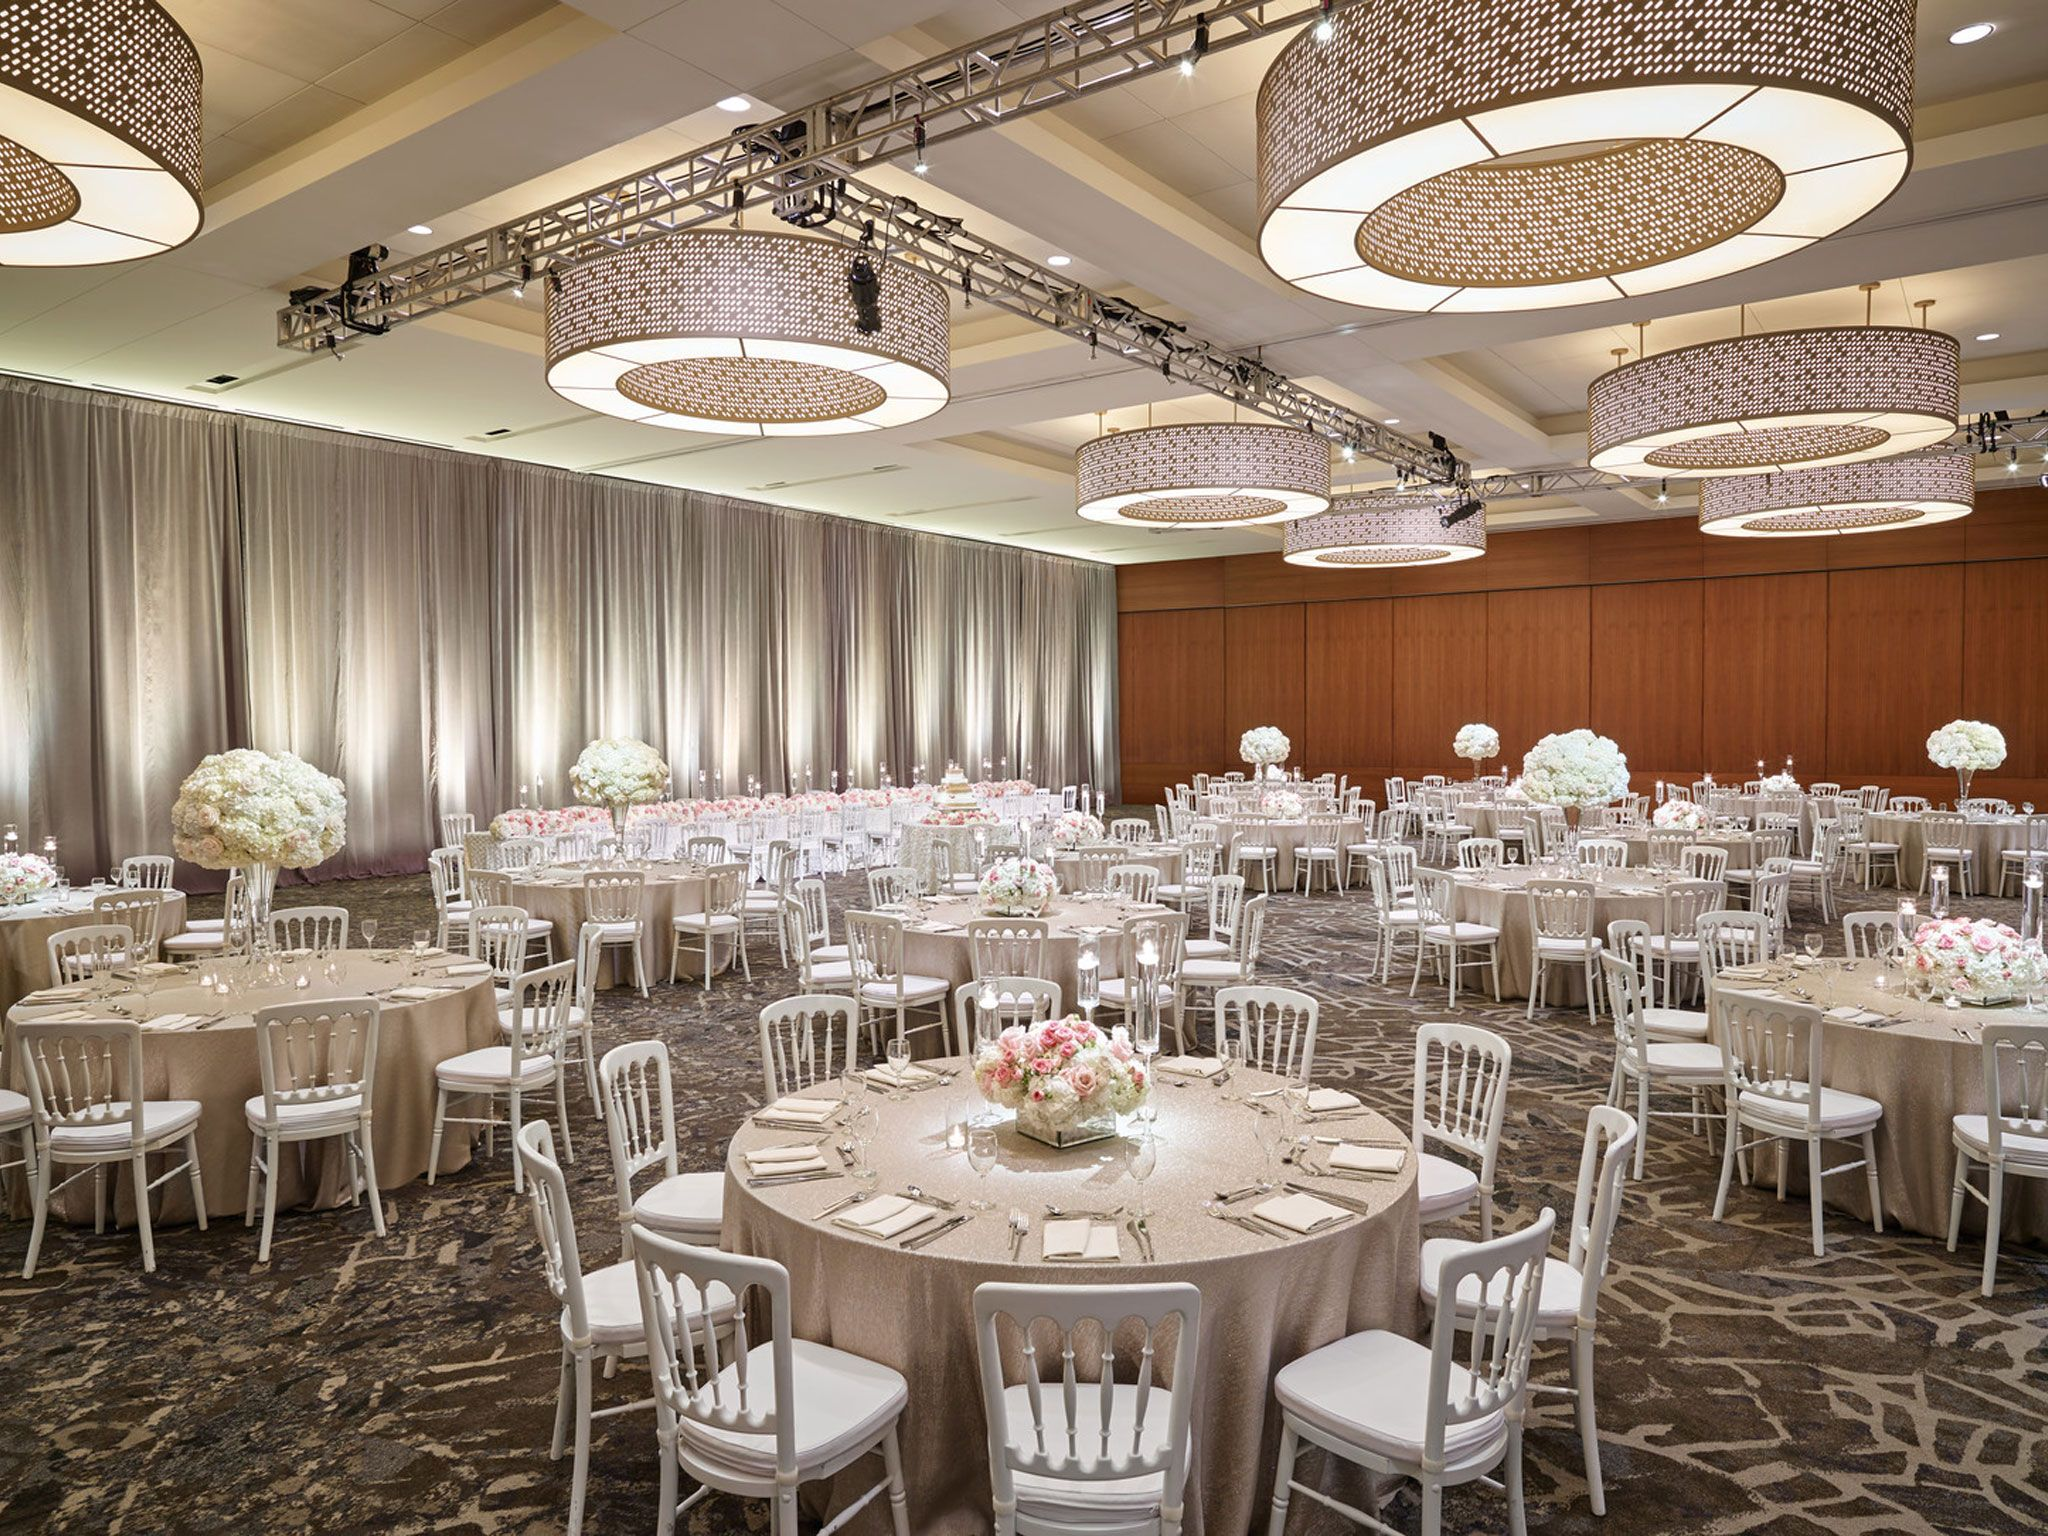 Dallas wedding venues the westin galleria dallas the westin galleria dallas san antonio ballroom dallas wedding venues junglespirit Choice Image